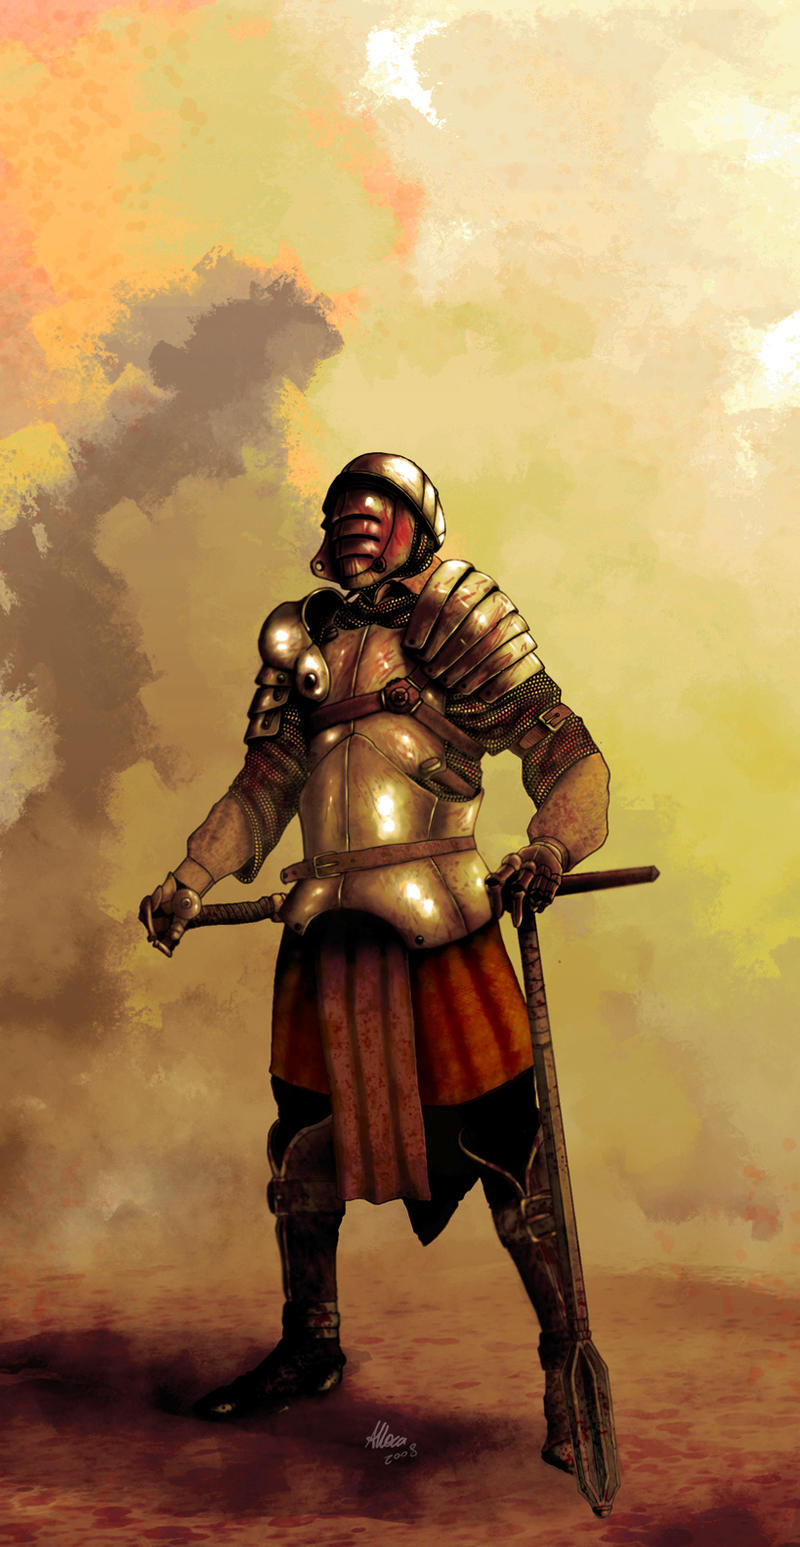 http://fc04.deviantart.net/fs22/i/2008/021/2/6/The_last_Gladiator_by_FlyingNerve.jpg